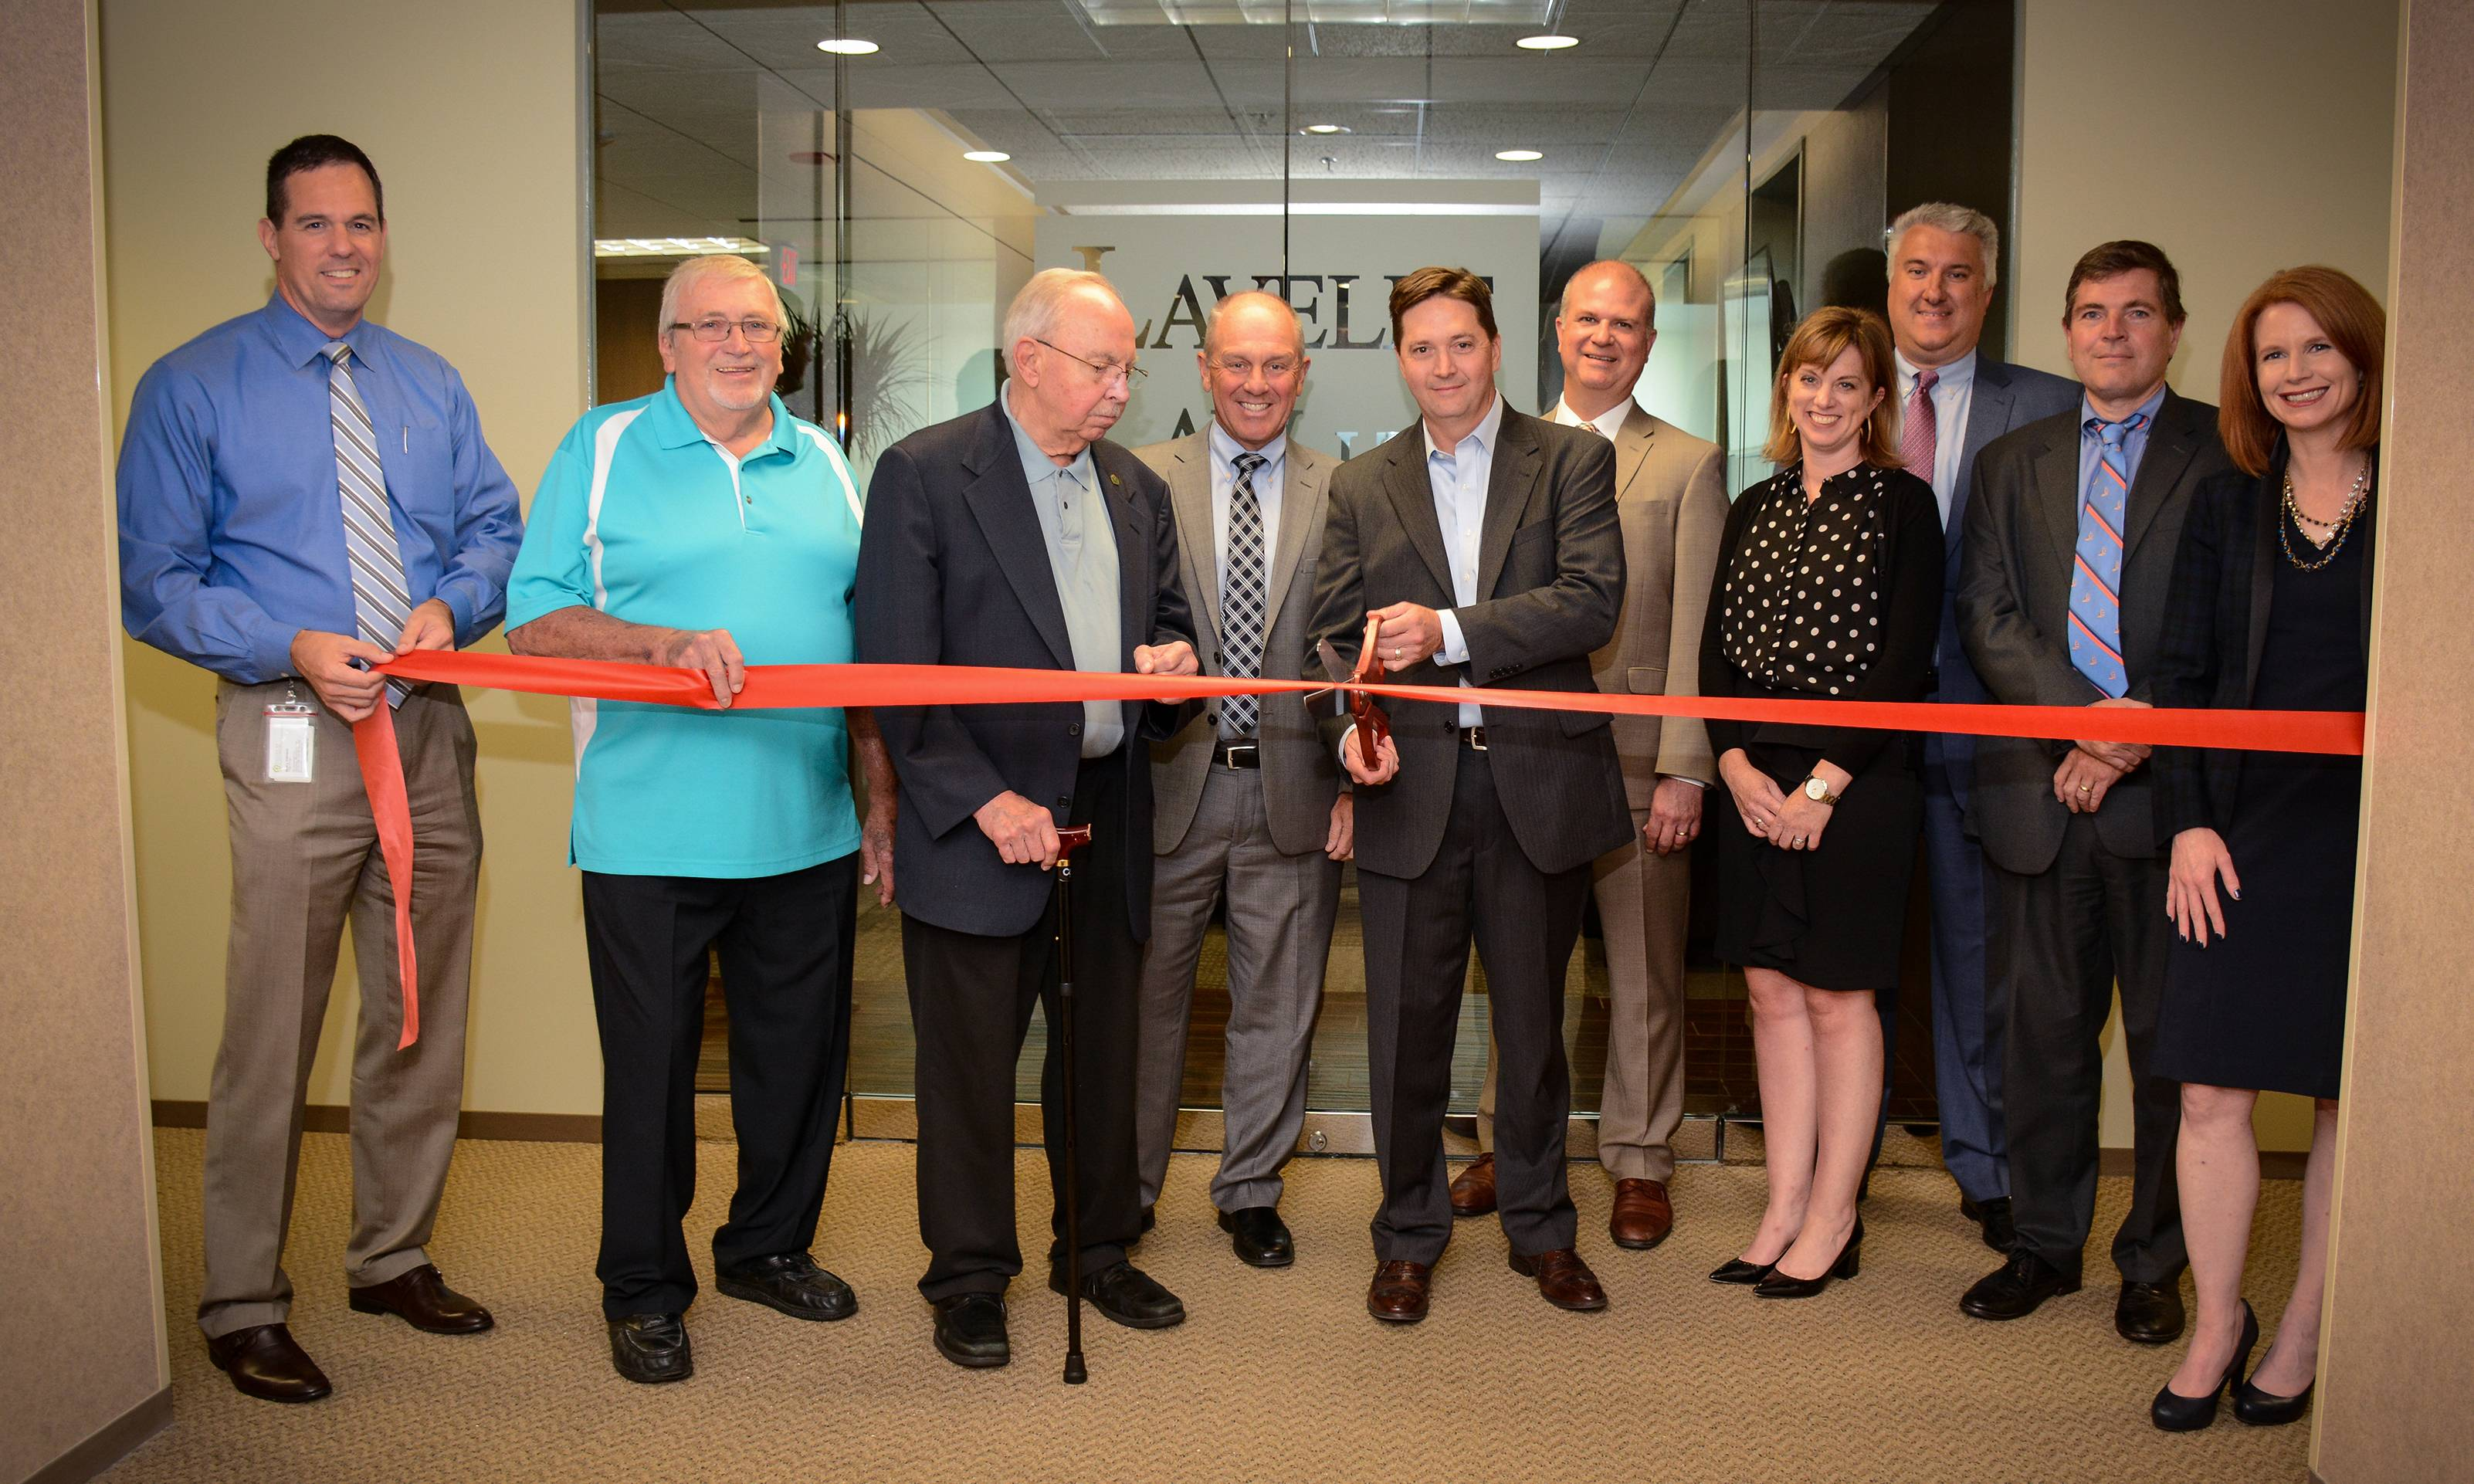 Schaumburg Mayor Al Larson and other village officials join Lavelle Law Managing Partner Ted McGinn and other partners in the firm at a ribbon cutting ceremony.